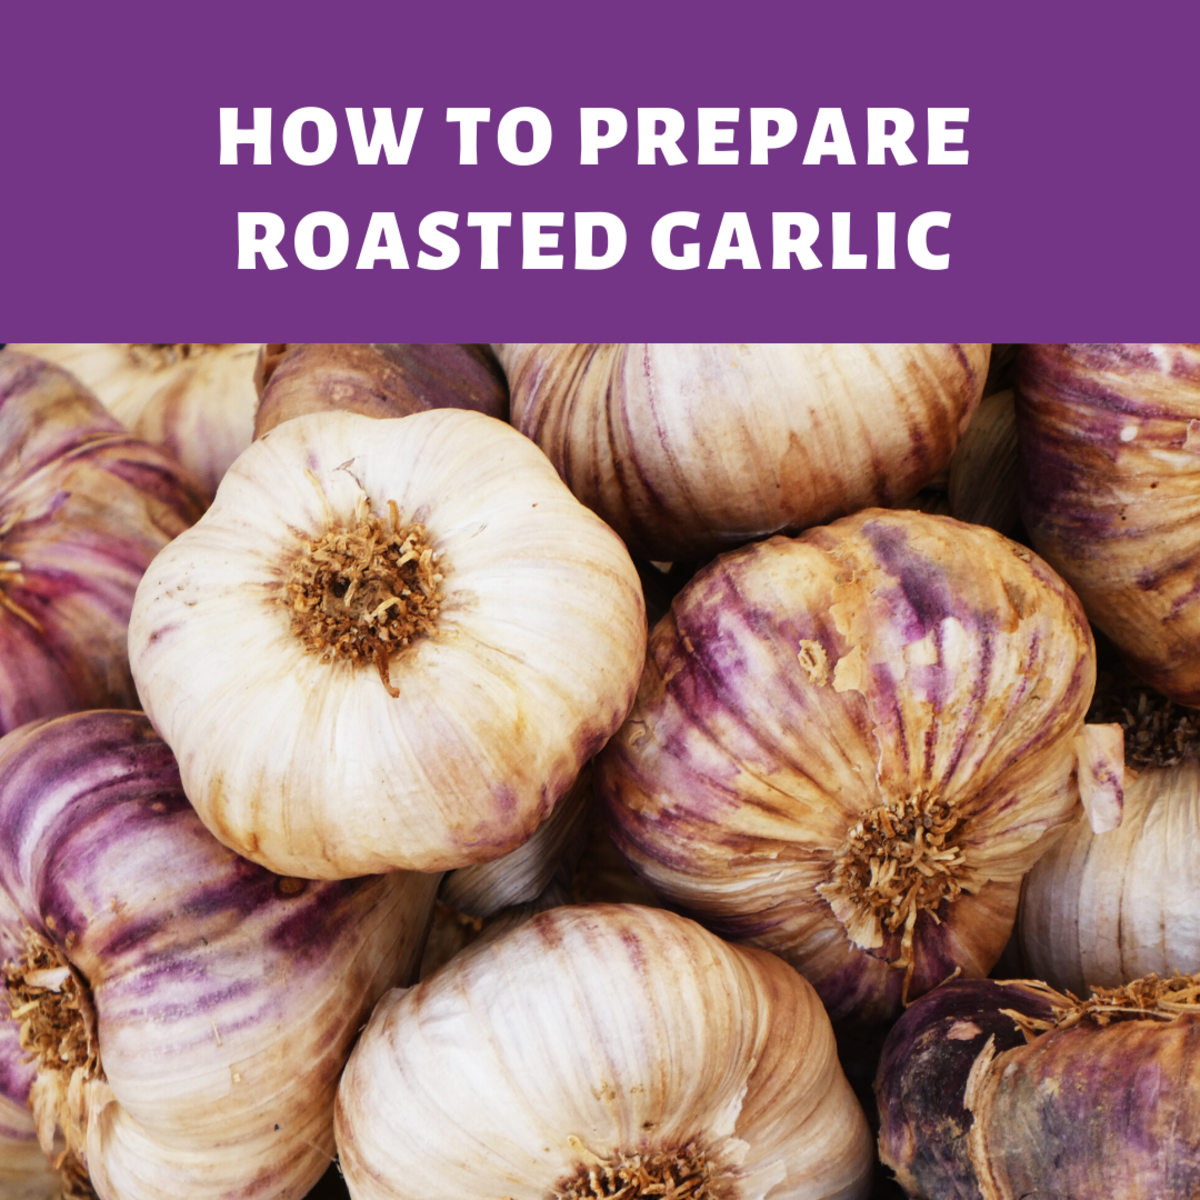 How to Prepare Roasted Garlic